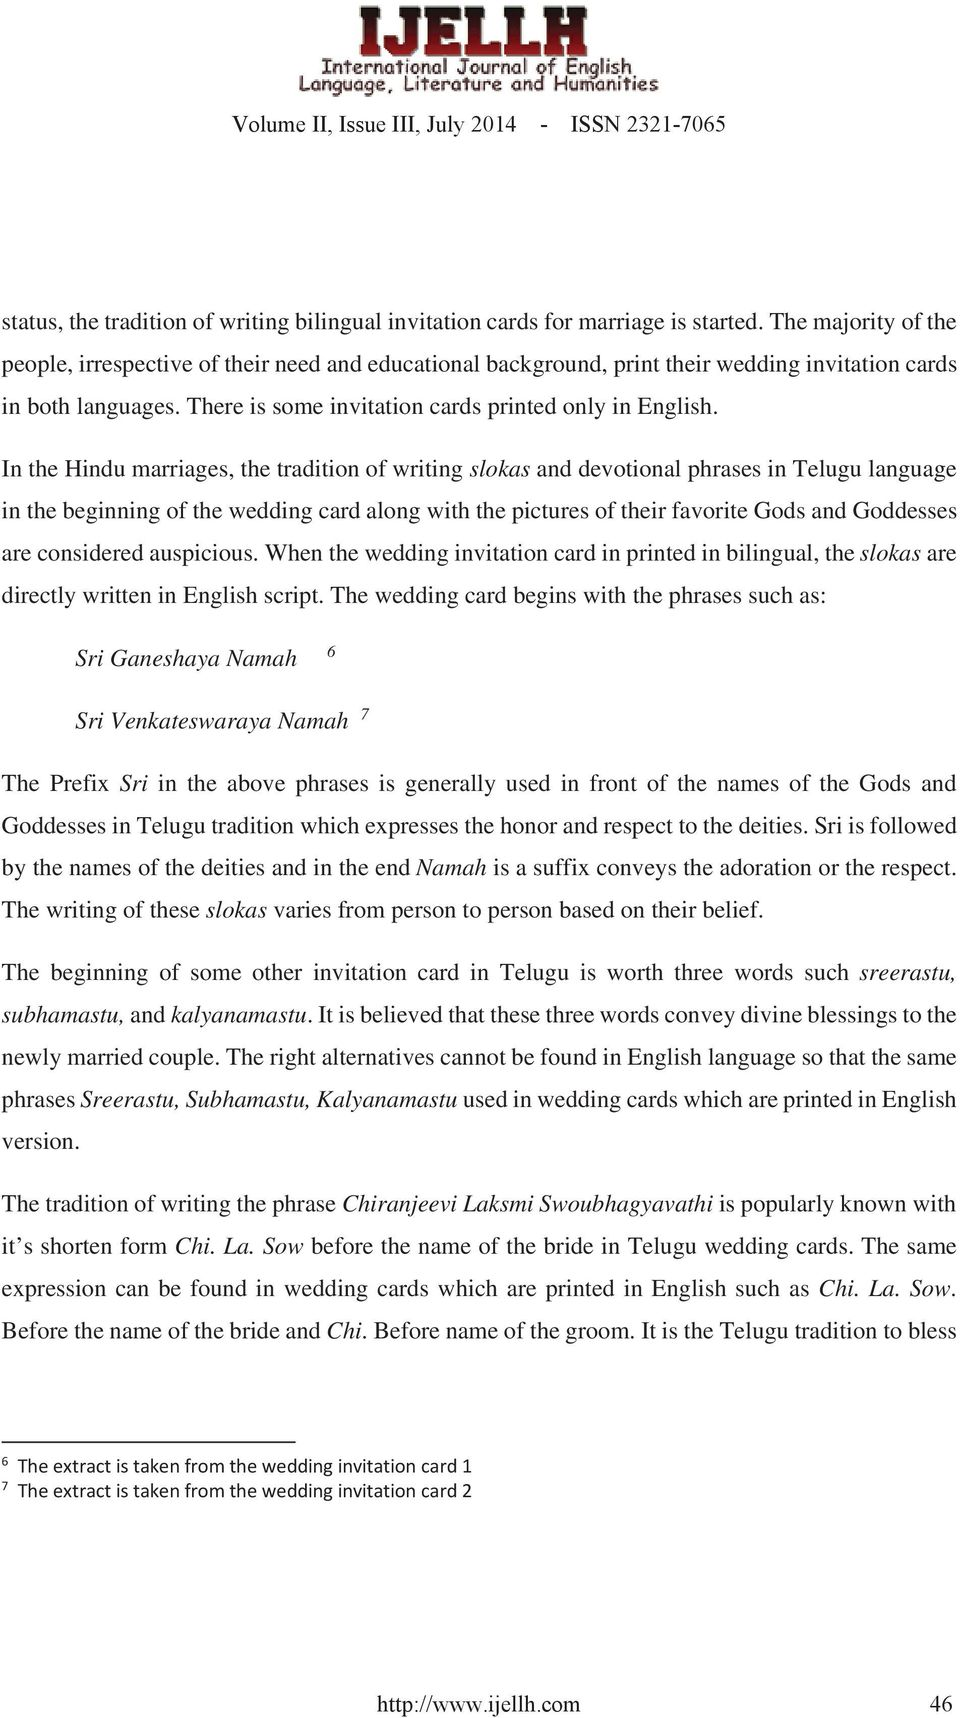 Intelligibility In The Use Of Telugu Terms And Phrases In